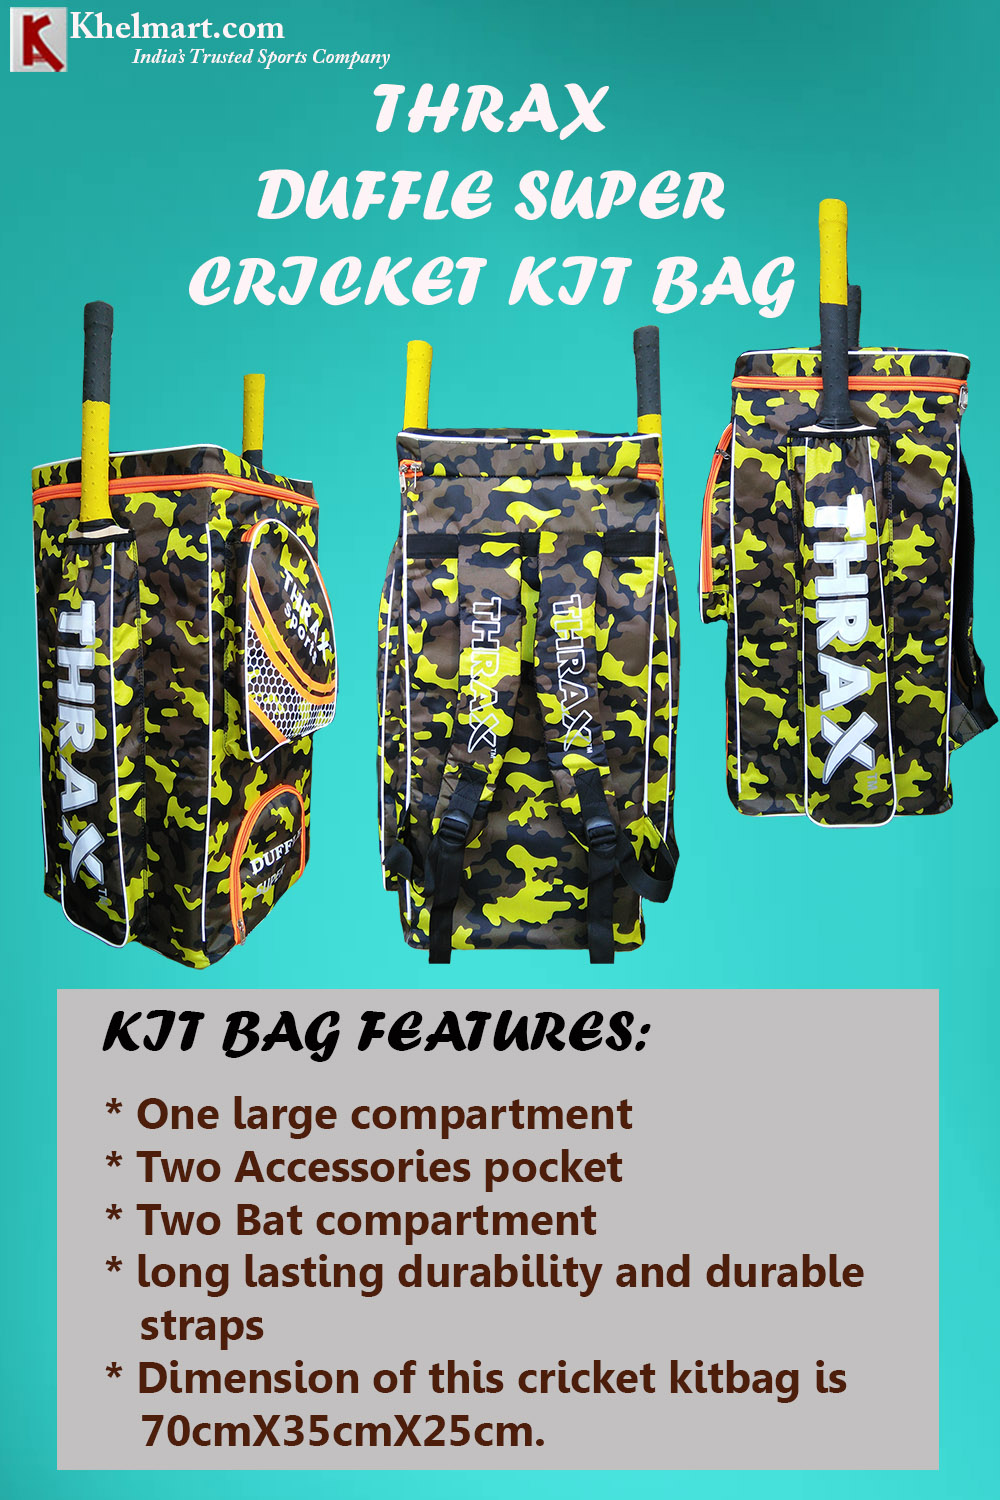 Thrax Duffle Super Cricket Kit Bag